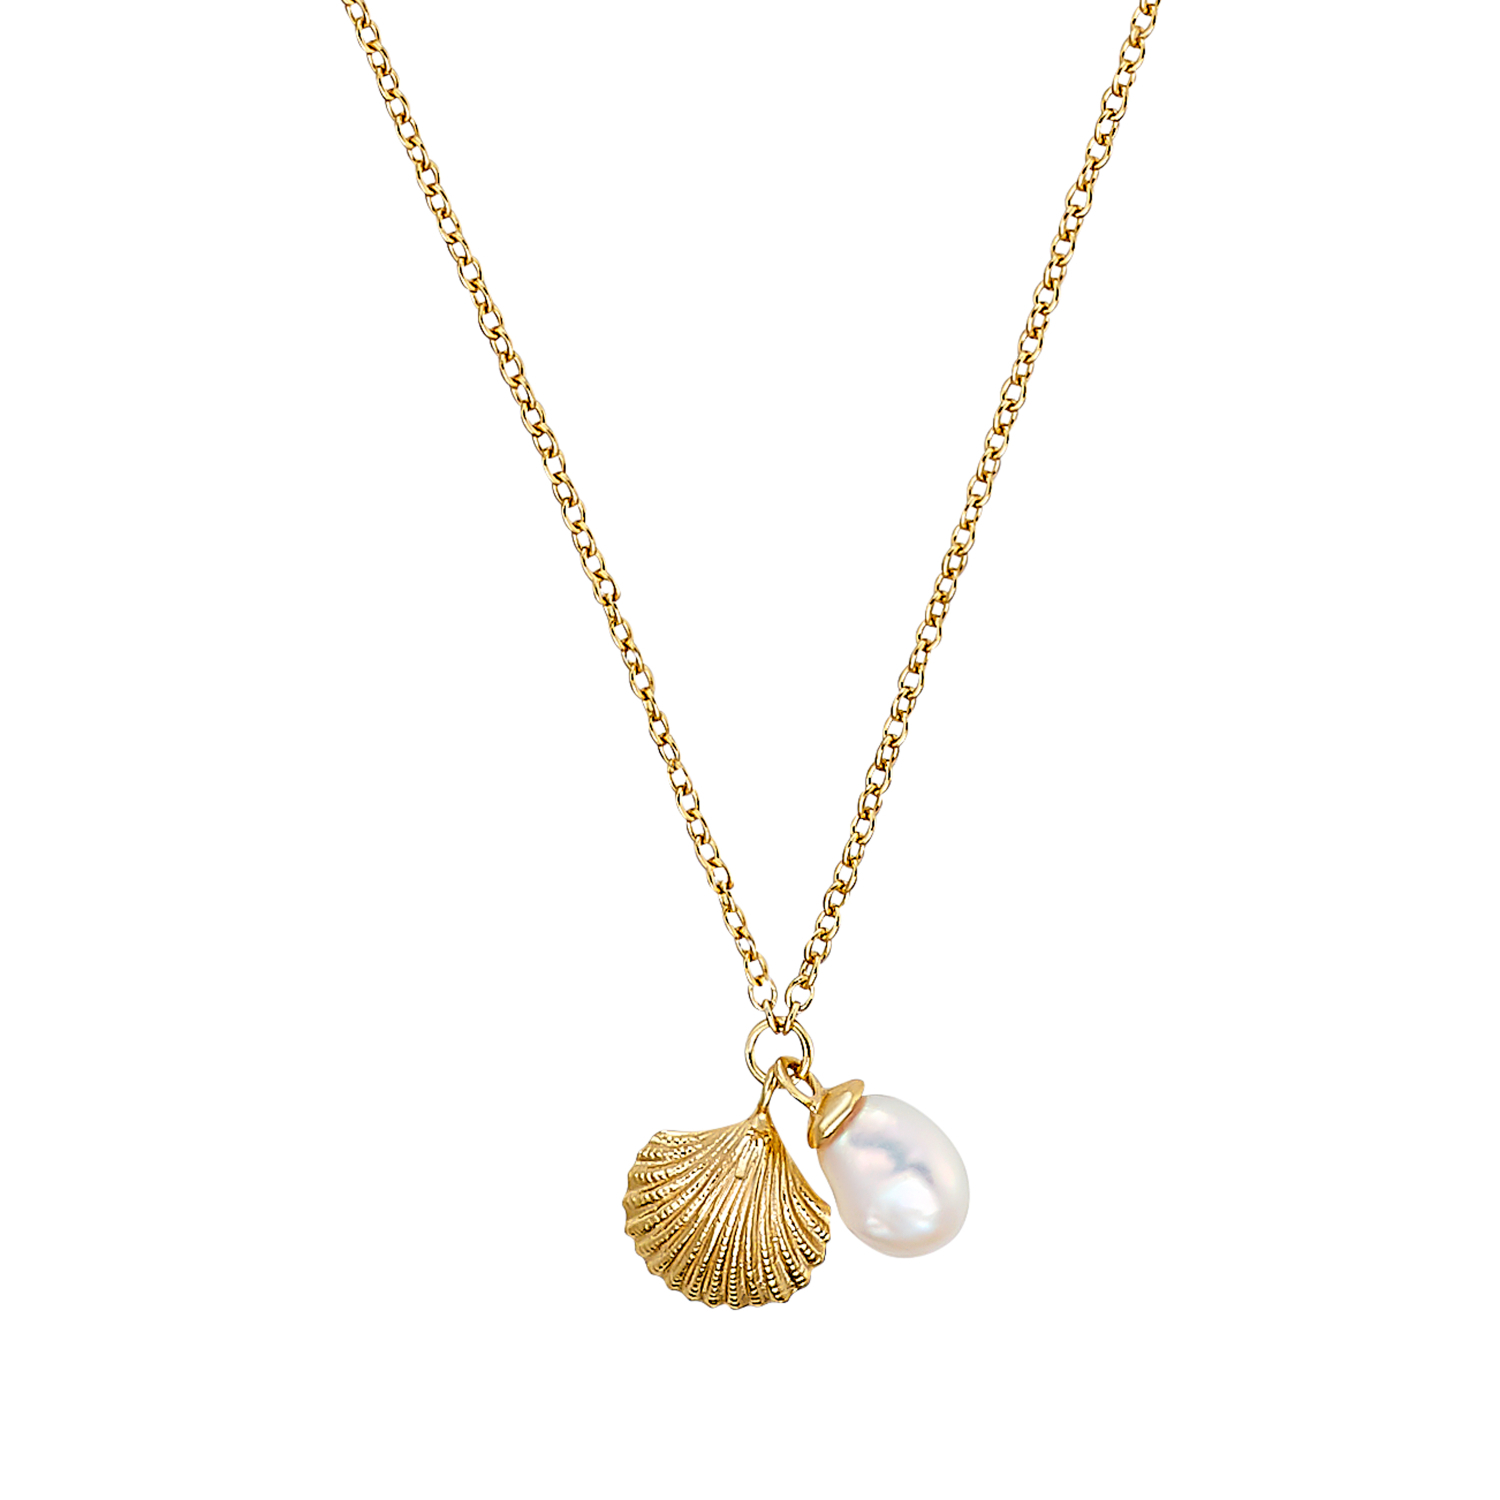 SHELL AND PEARL KETTE MIT ANHÄNGER GOLD